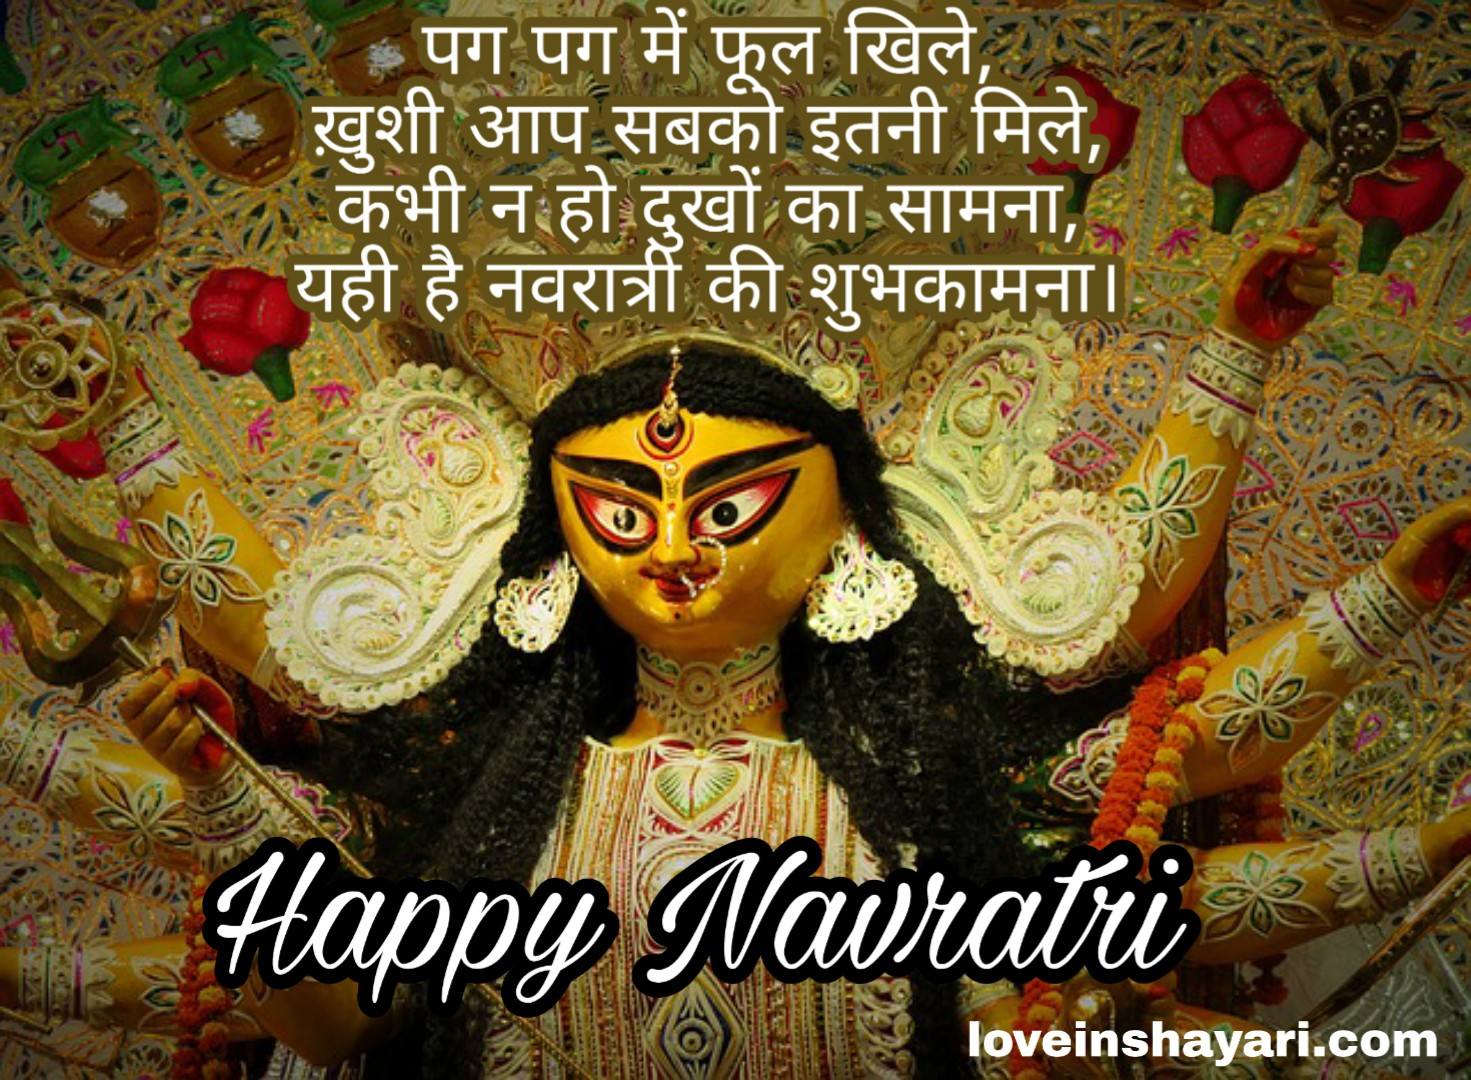 Photo of Navratri shayari images 2020